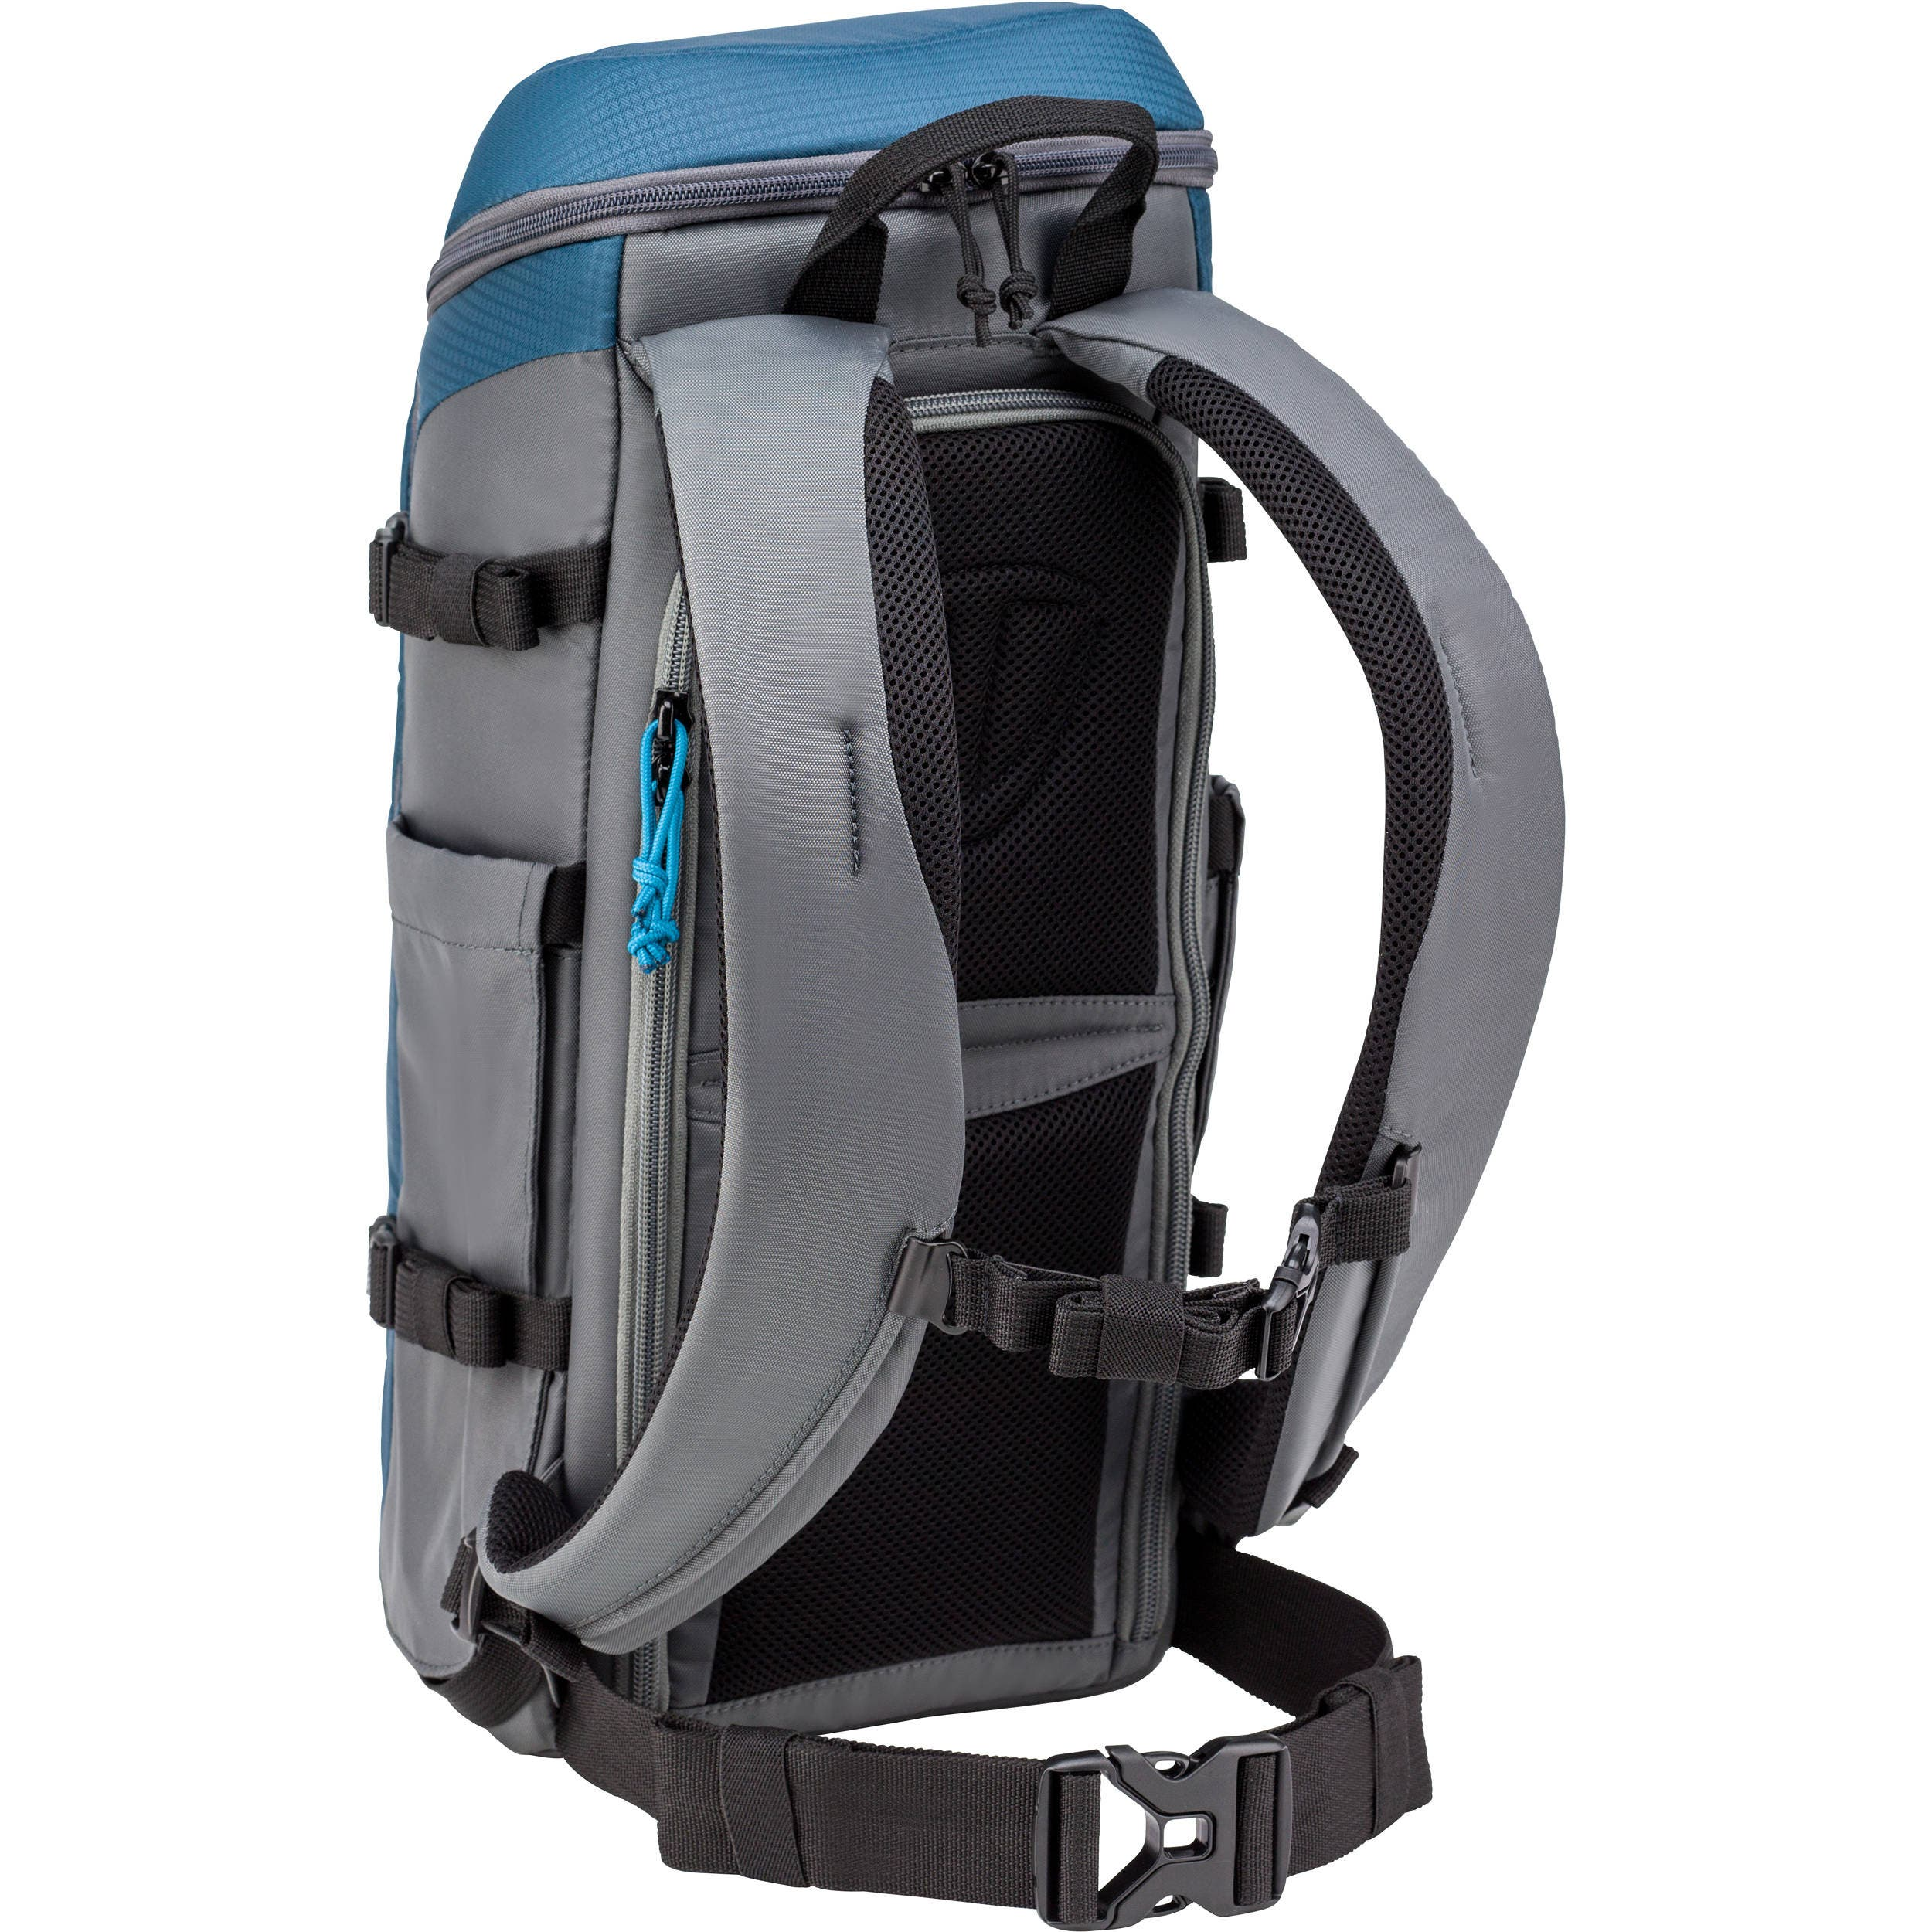 Tenba Solstice Backpack 20L (Blue) | Camera-Warehouse.com.au